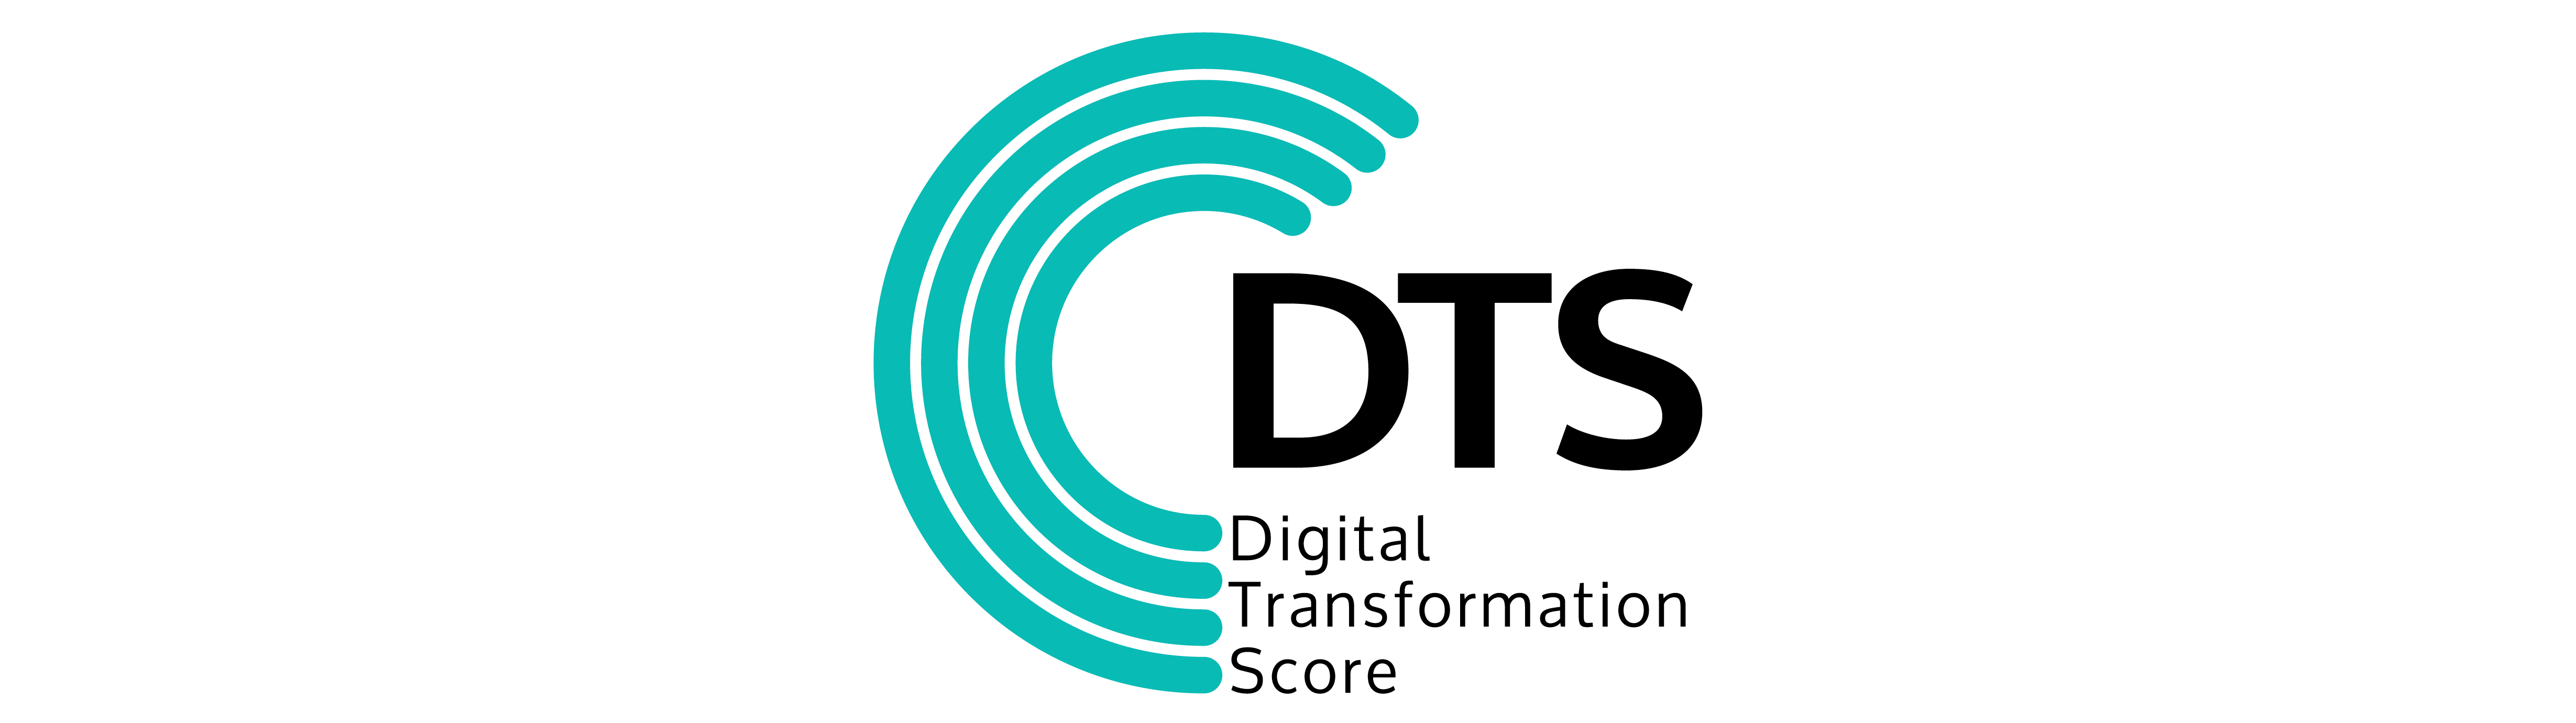 Digital Transformation Score